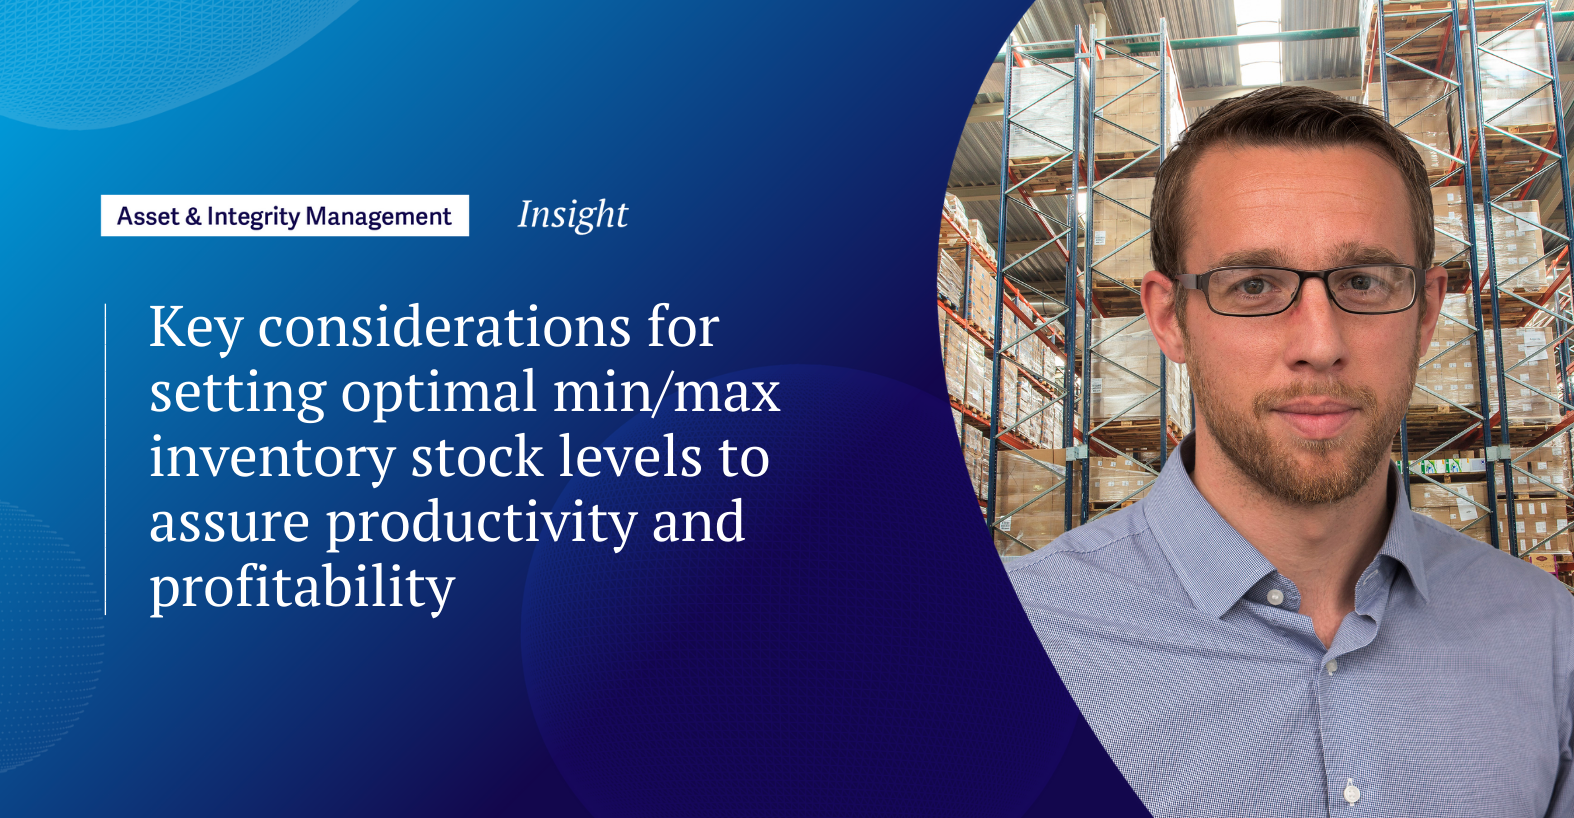 Key considerations for setting optimal min/max inventory stock levels to assure productivity and profitability